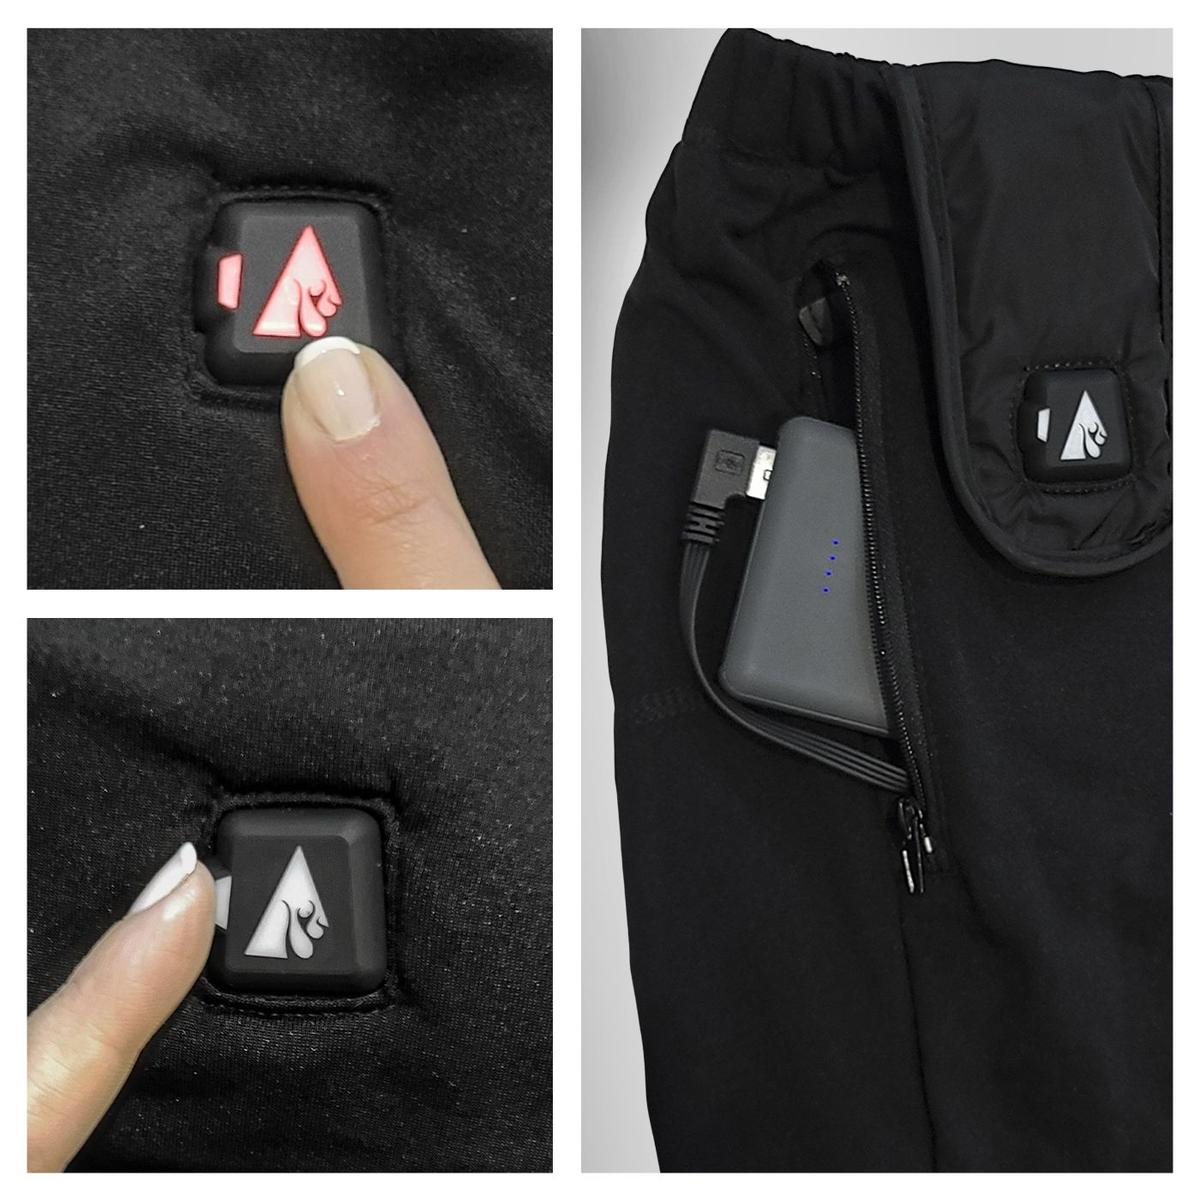 ActionHeat 5V Heated Base Layer Pants - Women's - Full Set